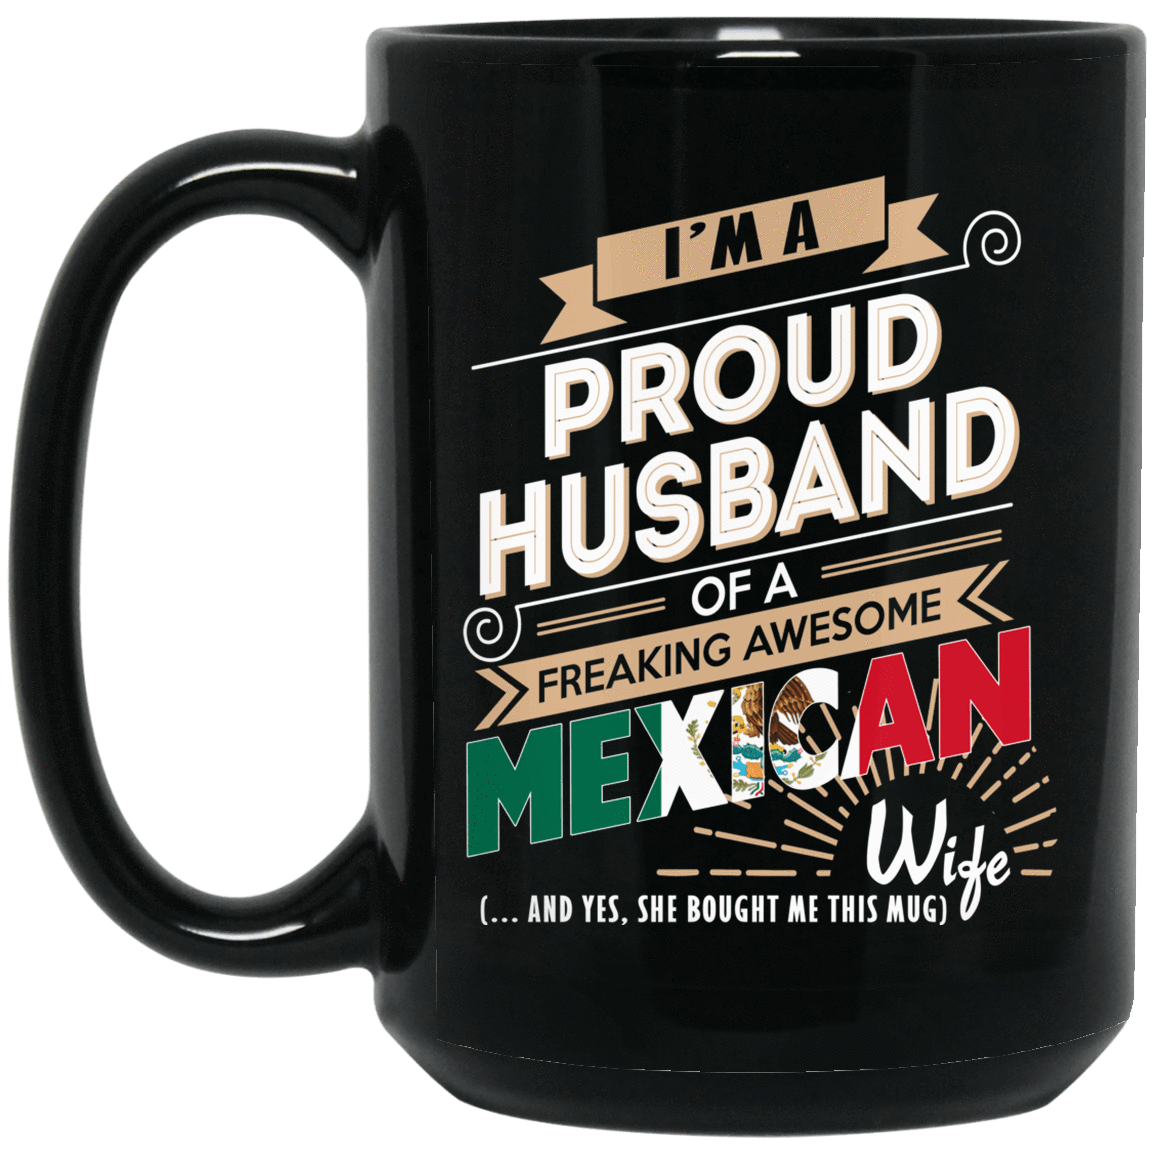 Proud Husband Of A Freaking Awesome Mexican Wife Mug 1066-10182-72136516-49311 - Tee Ript